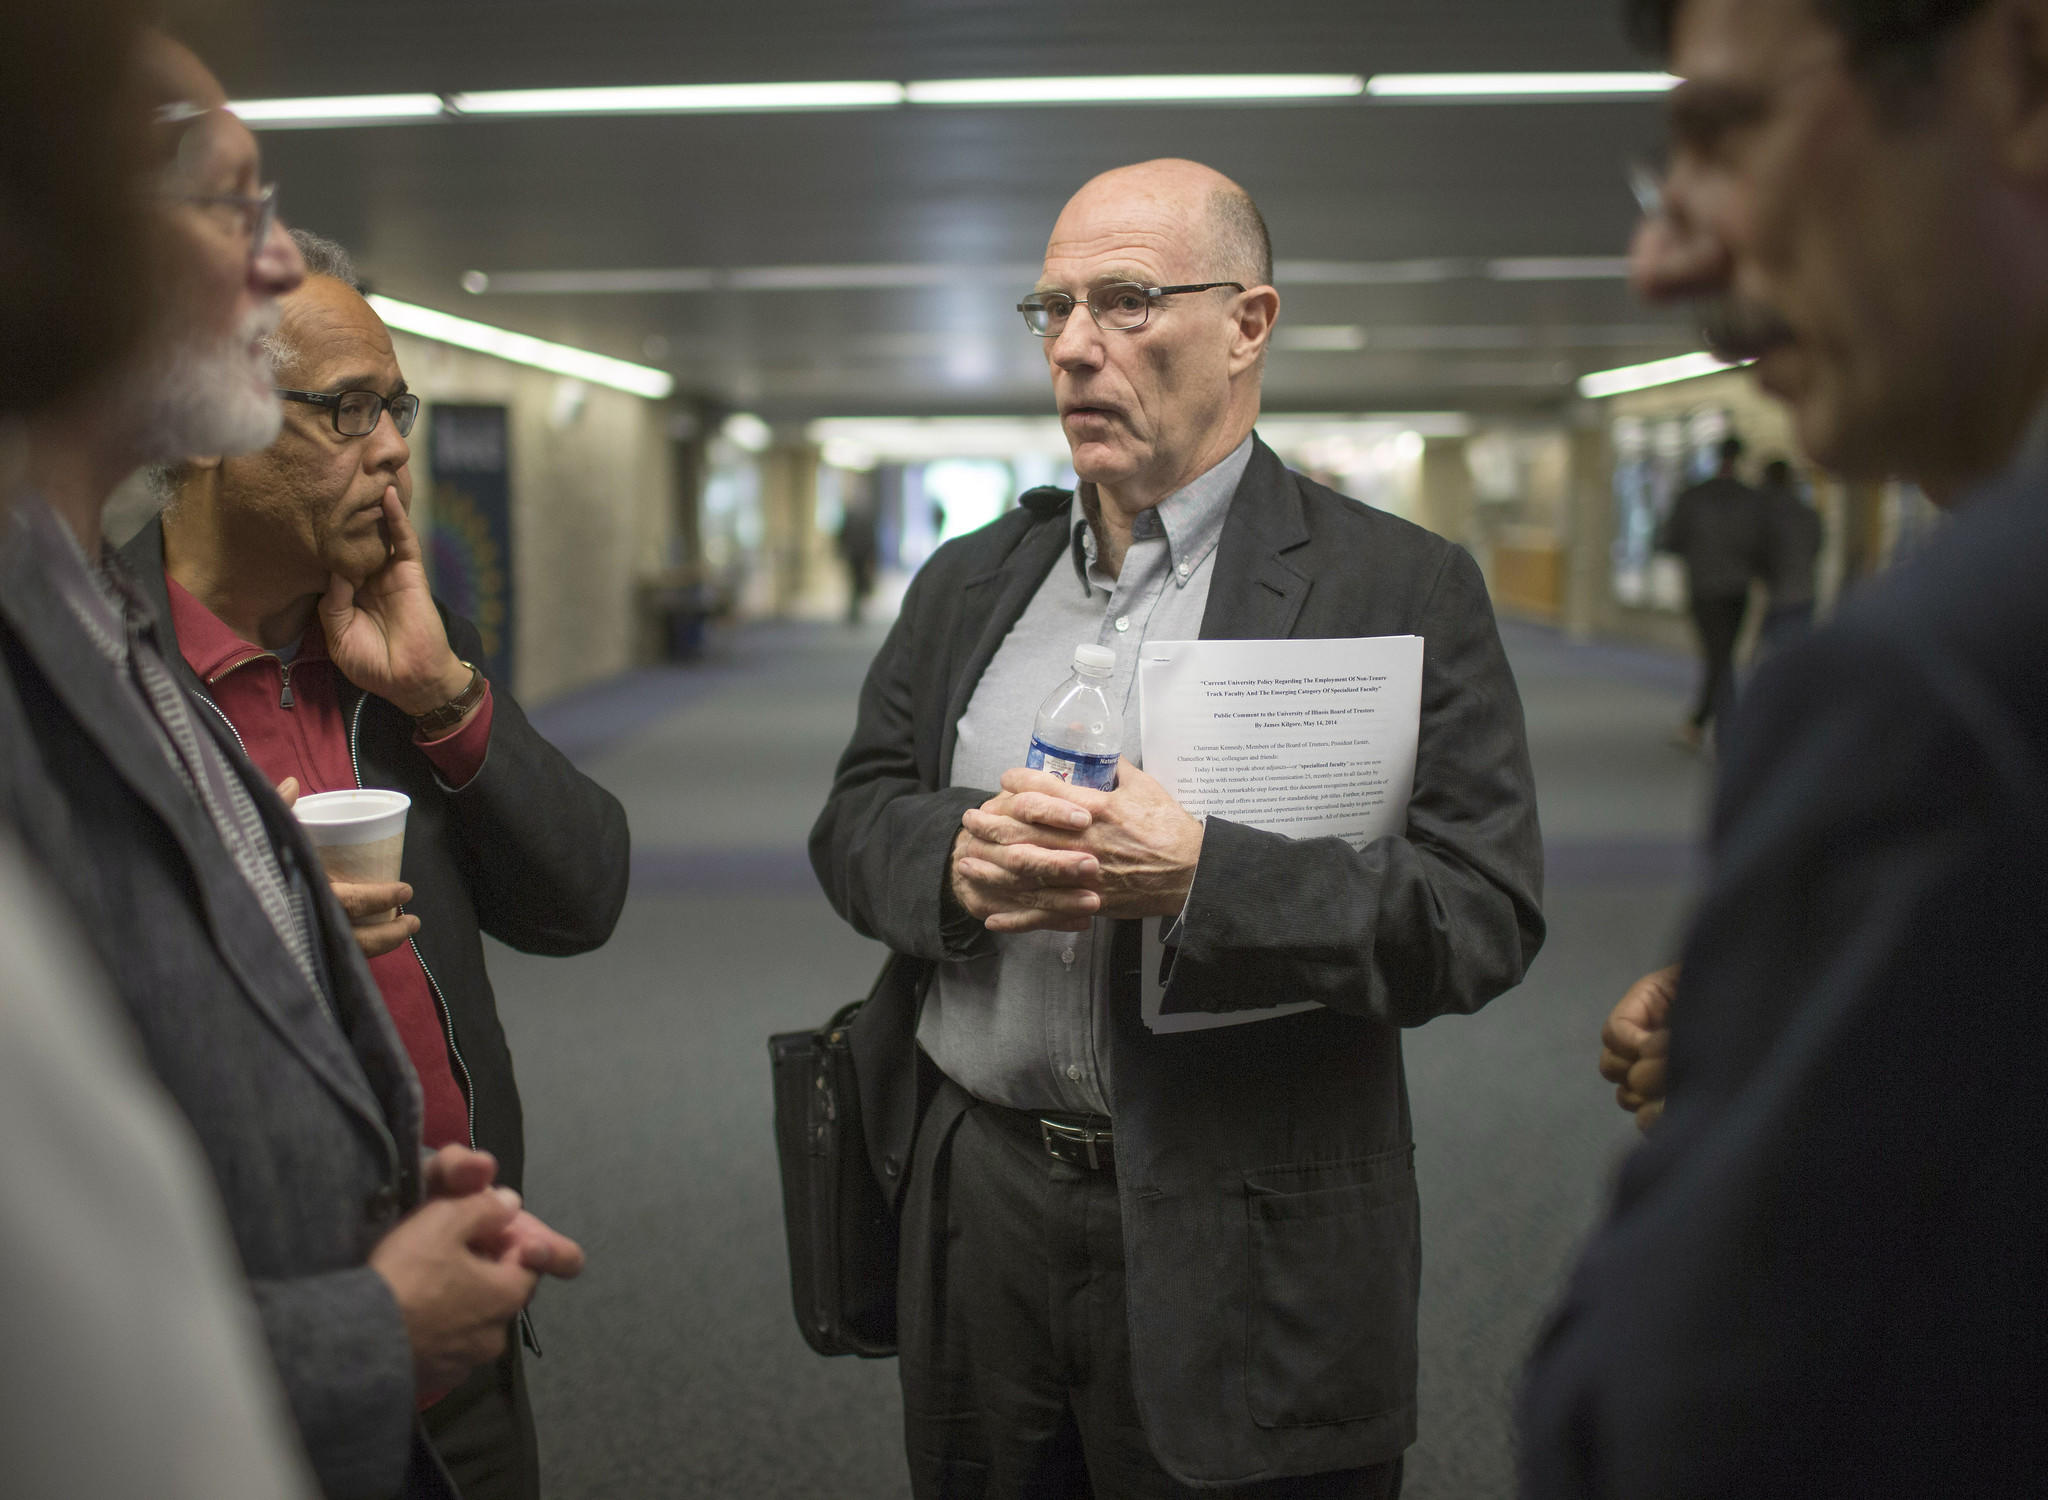 James Kilgore, center, speaks to colleagues after a board meeting at the University of Illinois Springfield campus.